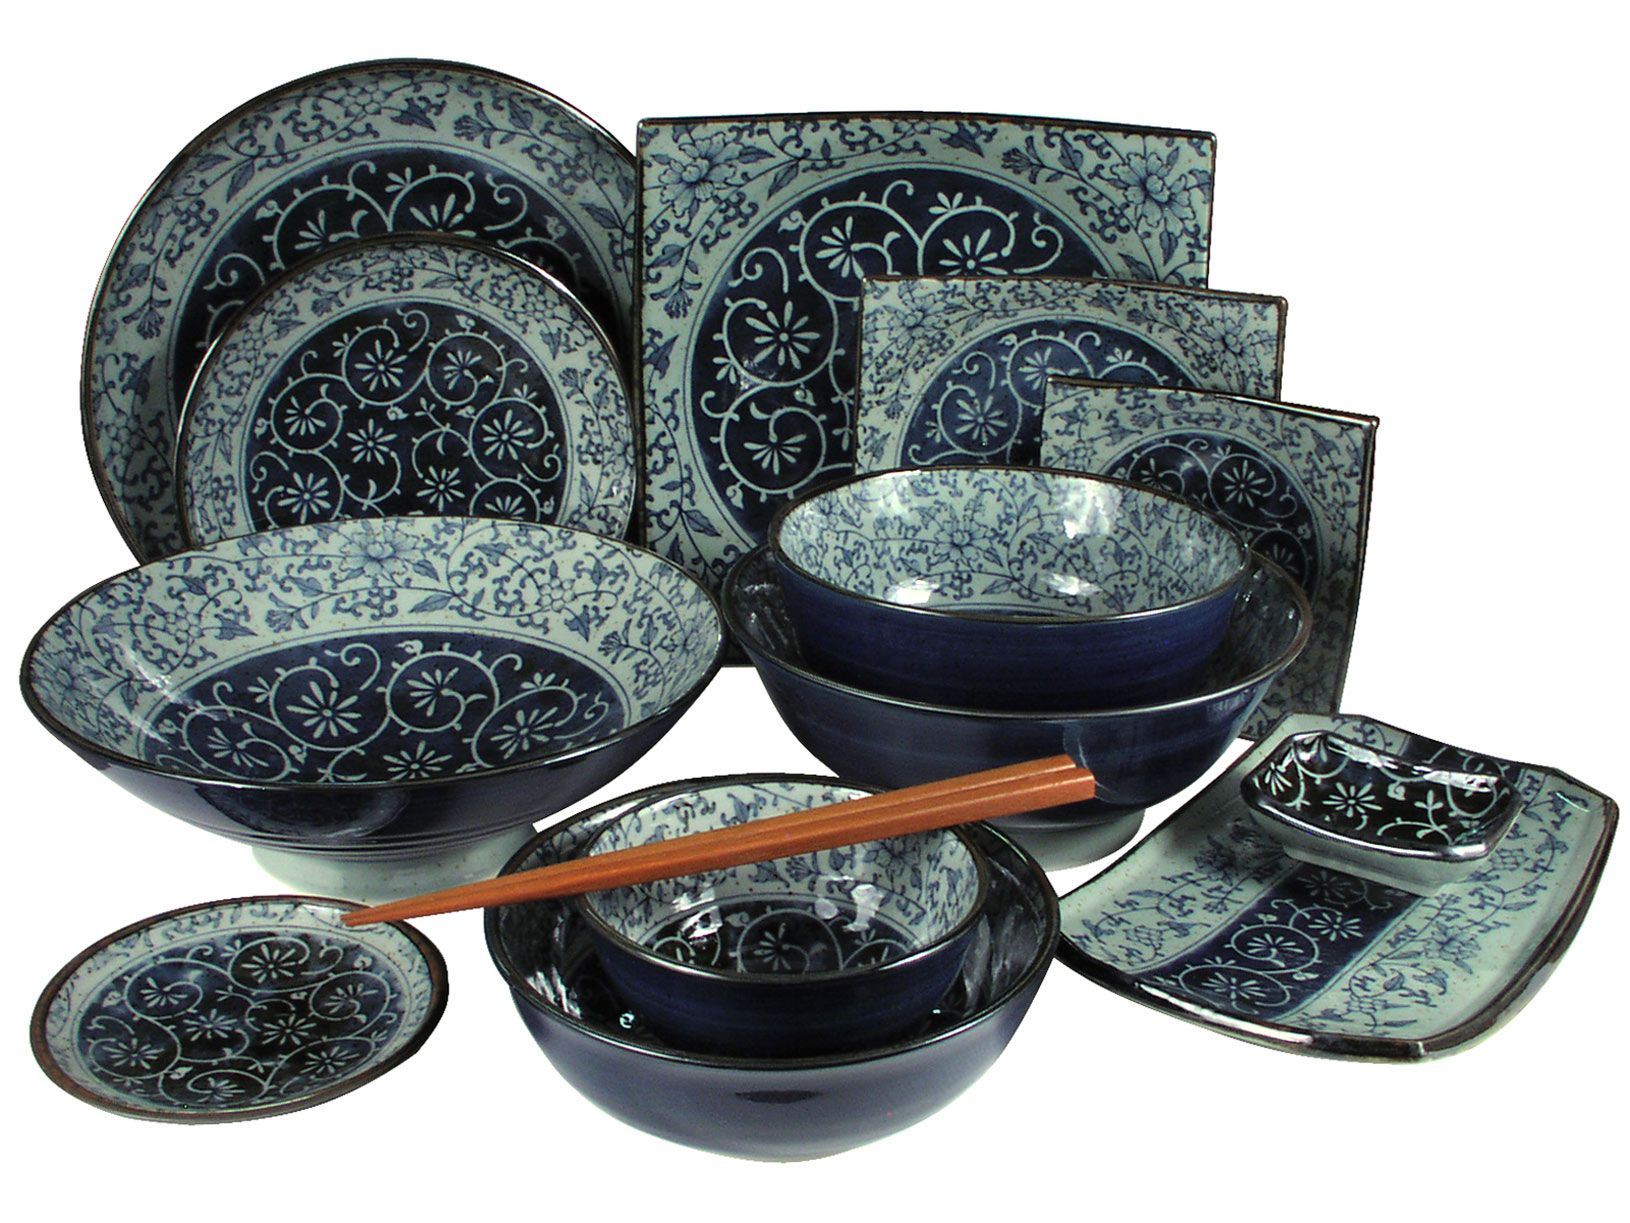 Enjoy the sleek lines u0026 contemporary patterns of Japanese tableware sets. A Japanese tableware set is a distinctive addition to your dinnerware.  sc 1 st  Pinterest & Rustic Dark Green Blue and Cream Karakusa | Dishes | Pinterest ...